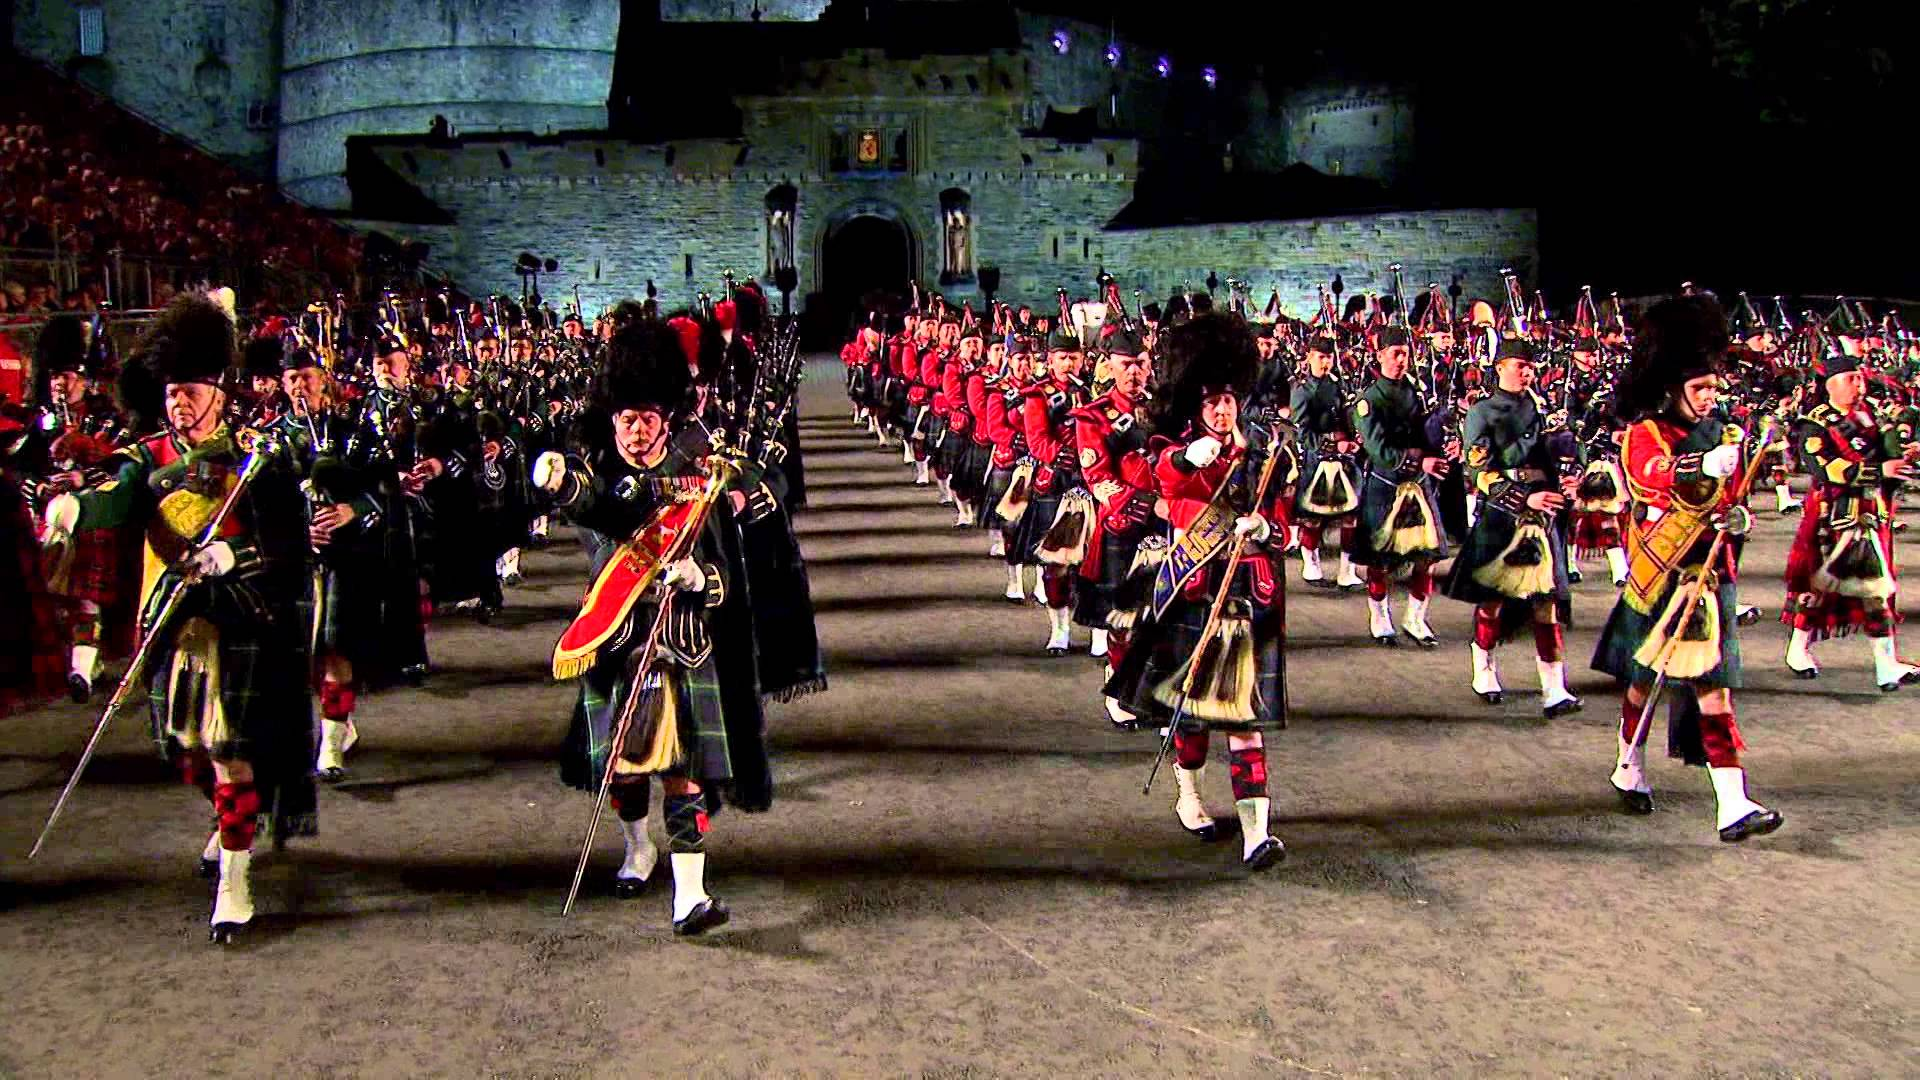 Scozia terra magica e fascino irresistibile dogma tours for Royal military tattoo